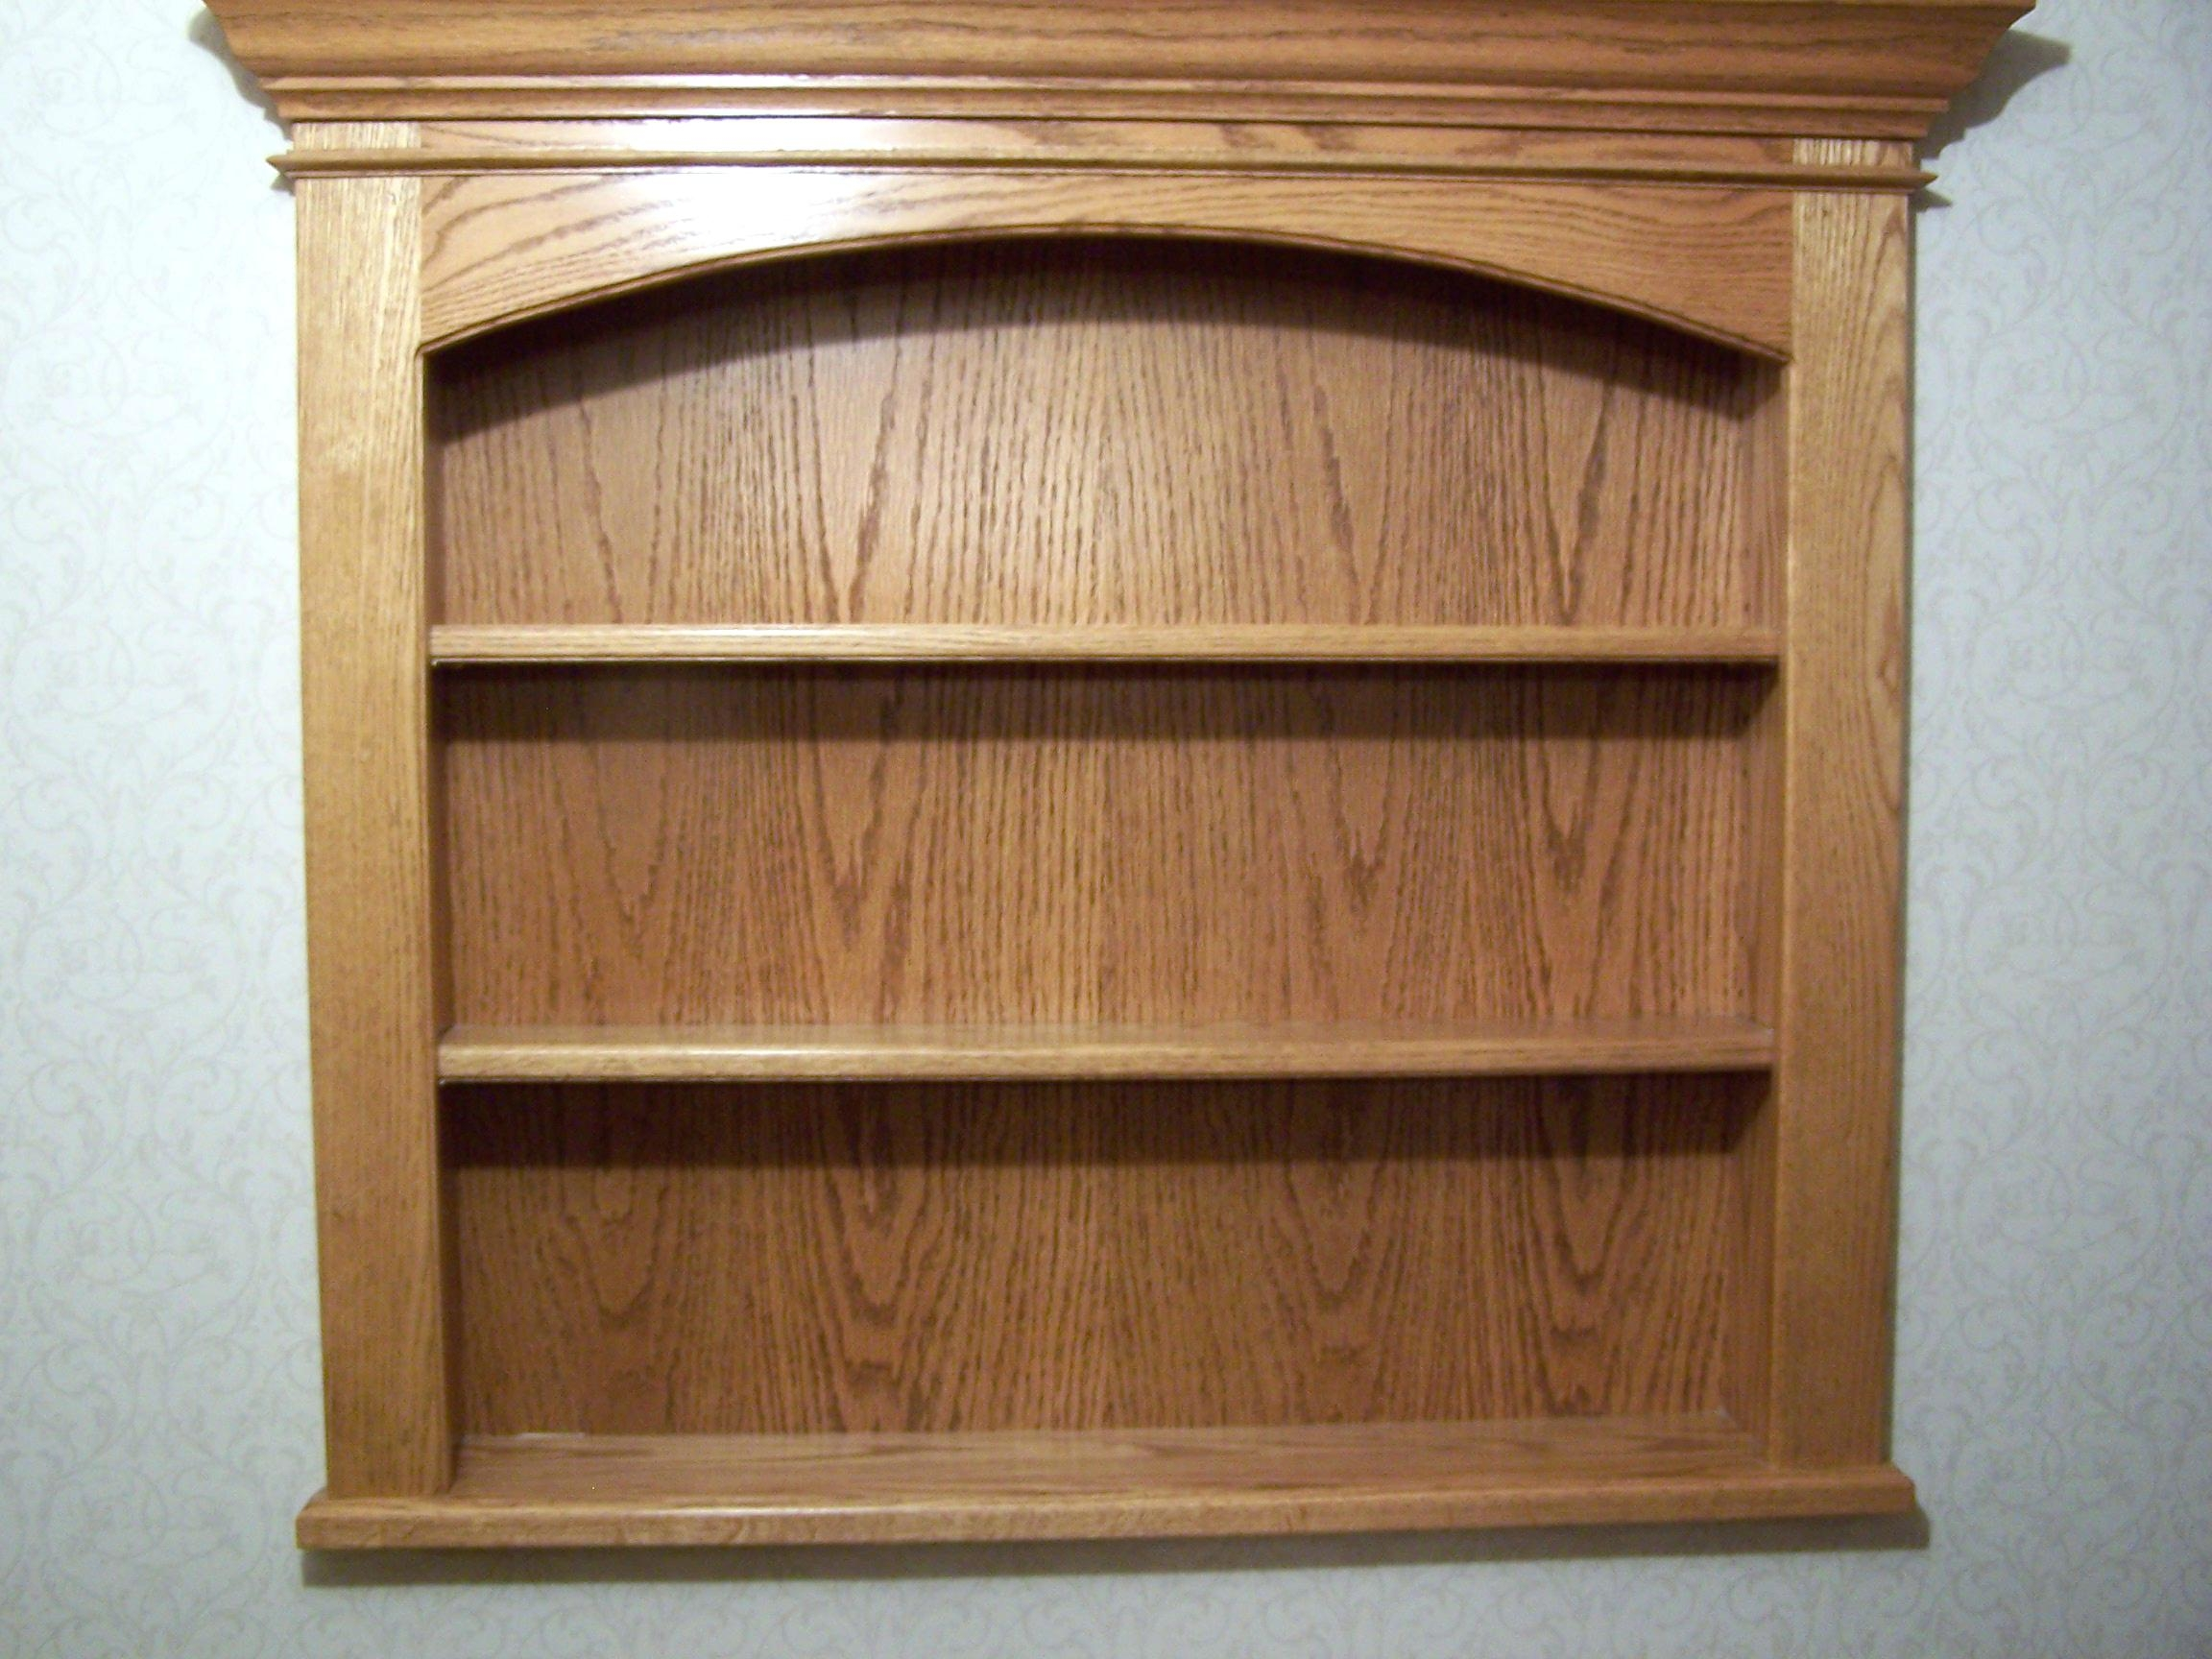 Pictures Of Wall Shelves 15 Collection Of Oak Wall Shelves